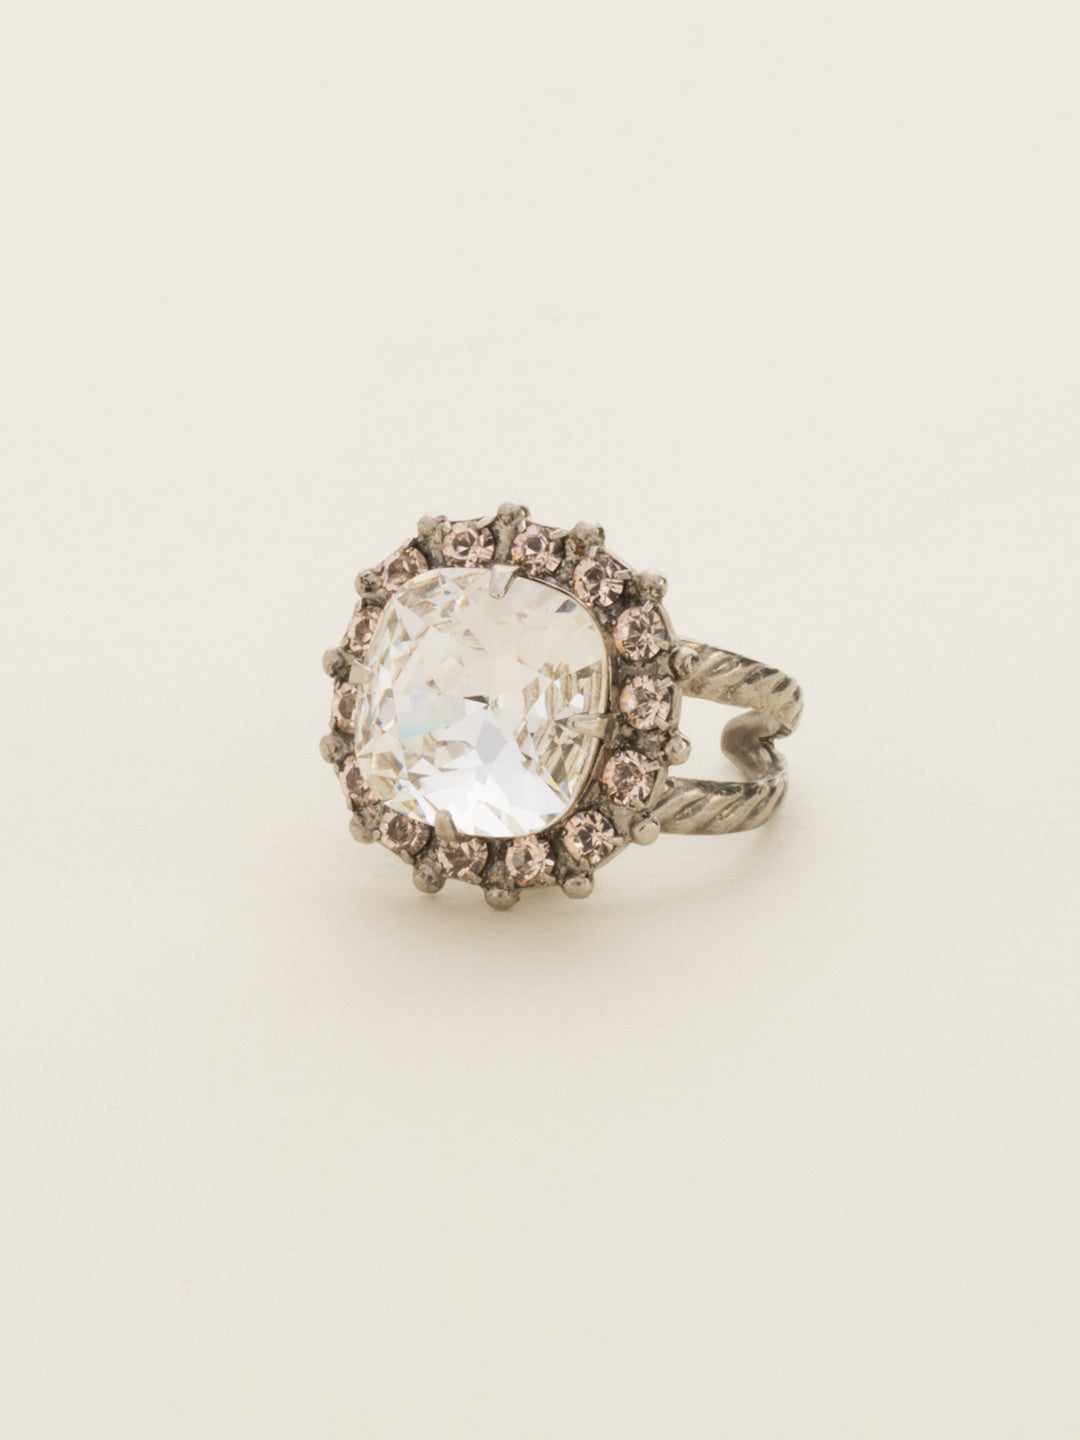 Cushion-Cut Cocktail Ring - RCR112ASSNB